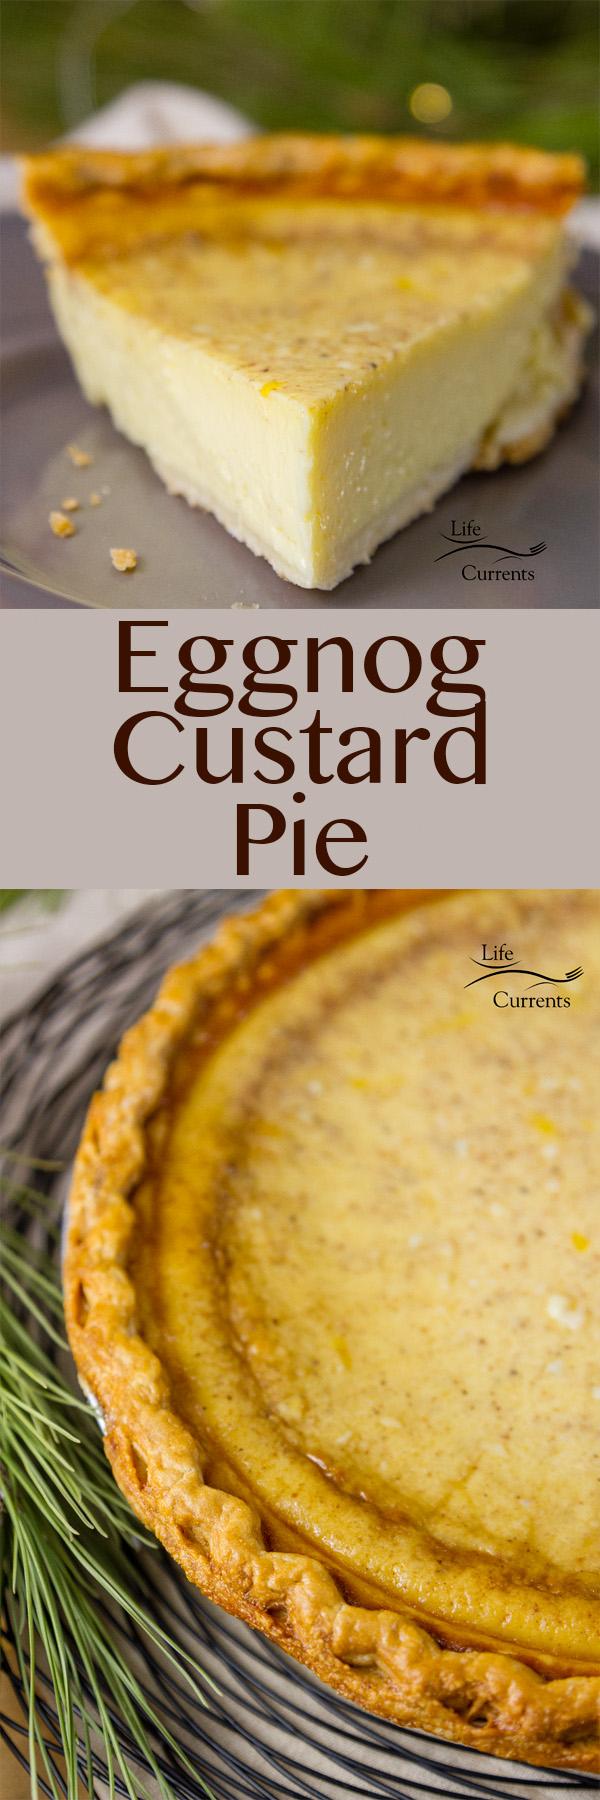 Eggnog Custard Pie is a delicious, easy to make, silky egg custard holiday pie that's filled with the wonderful festive flavors of the season.